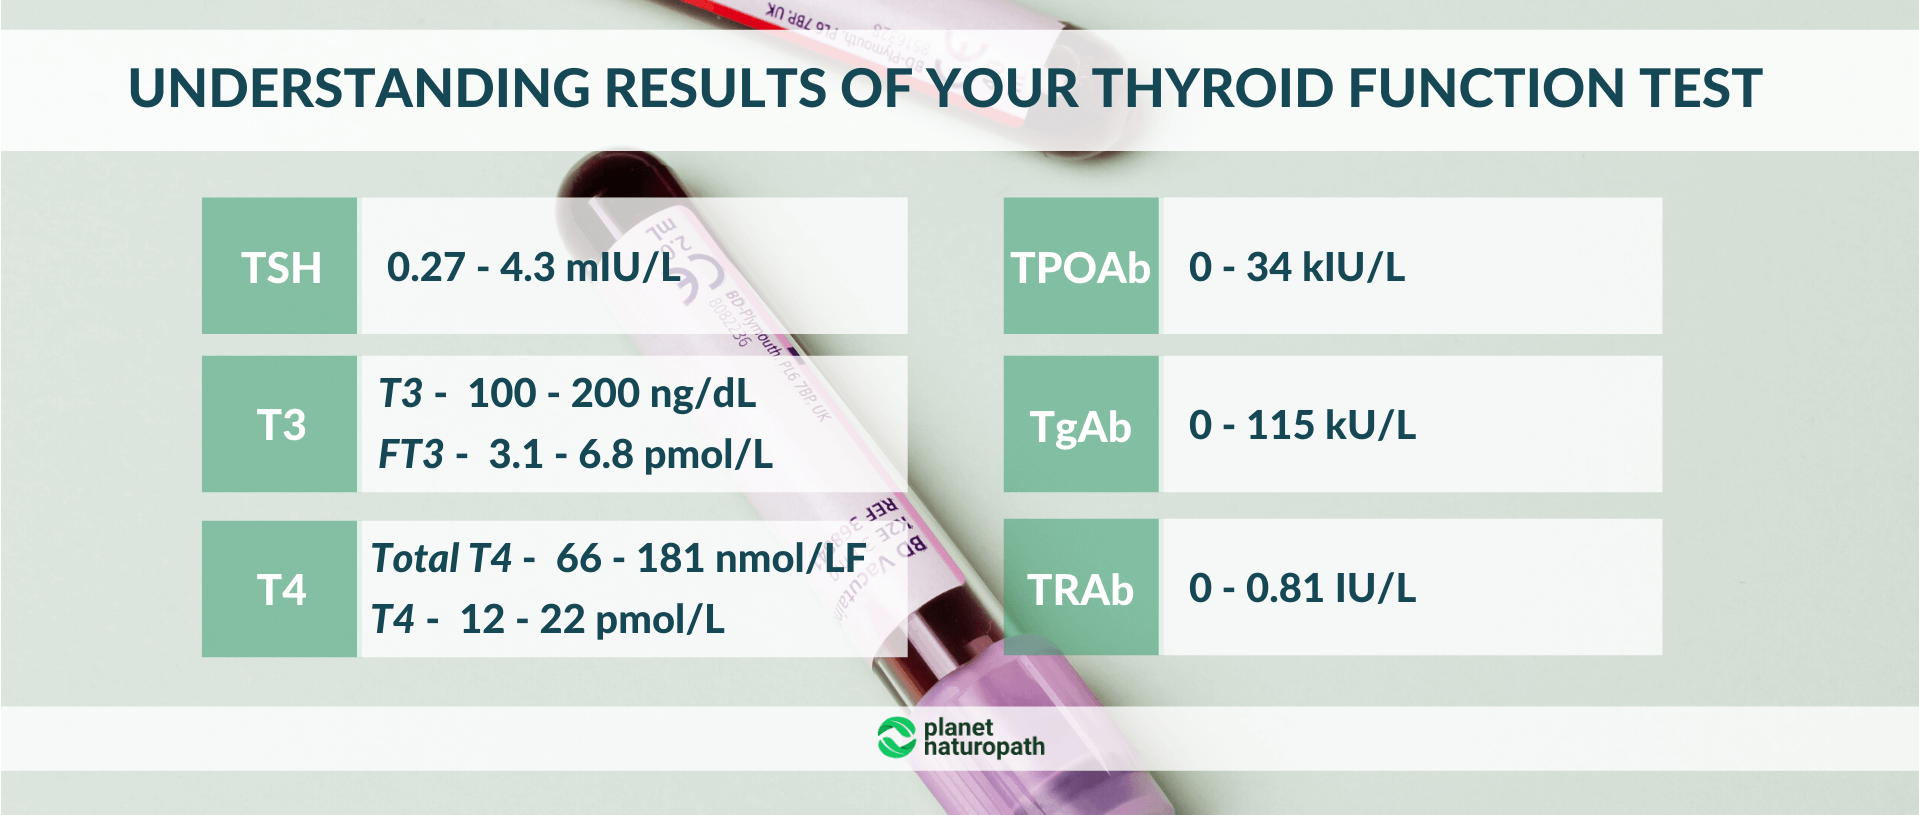 Understanding-results-of-your-thyroid-function-test